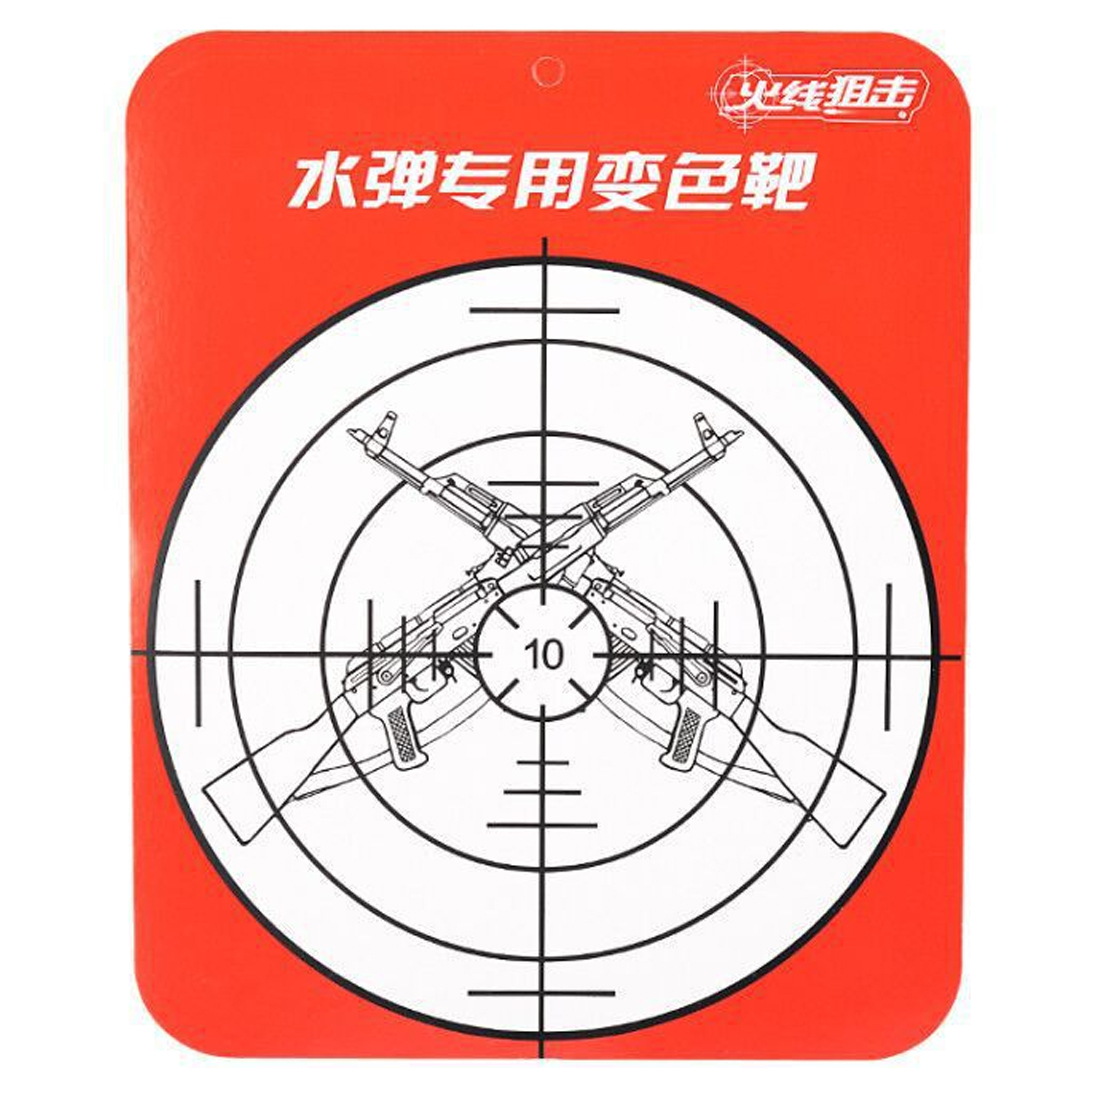 Toy Guitar Target Us 3 16 Nfstrike Shooting Discoloration Target For Water Bullet Ball Blaster Toys Outdoors Tactical Accessory For Kids High Quality In Toy Guns From